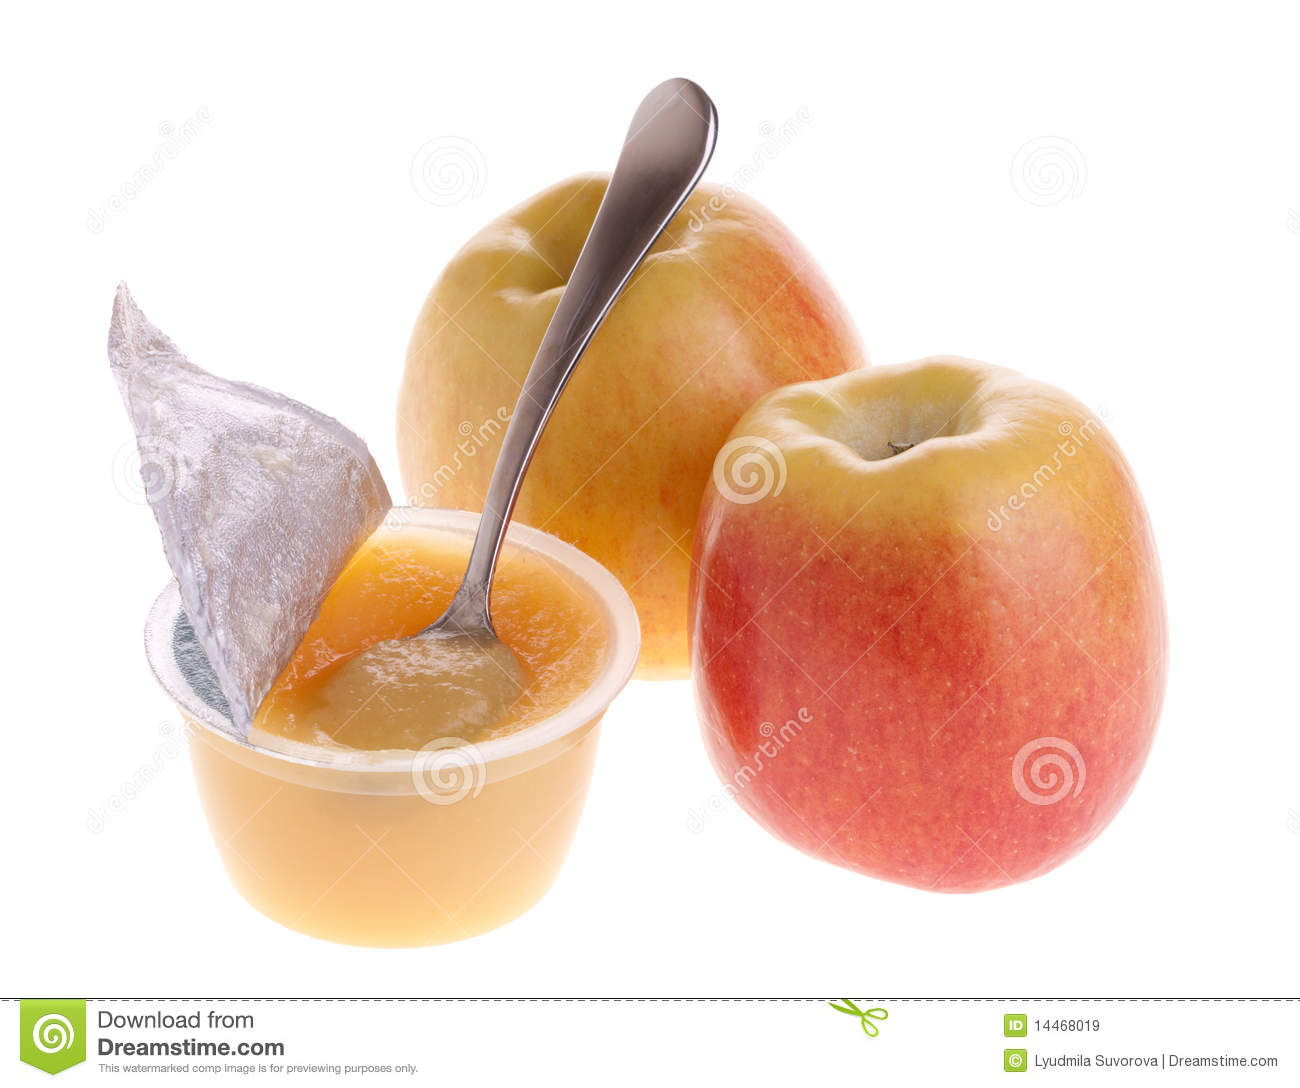 Apple Sauce And Apples Royalty Free Stock Images - Image: 14468019